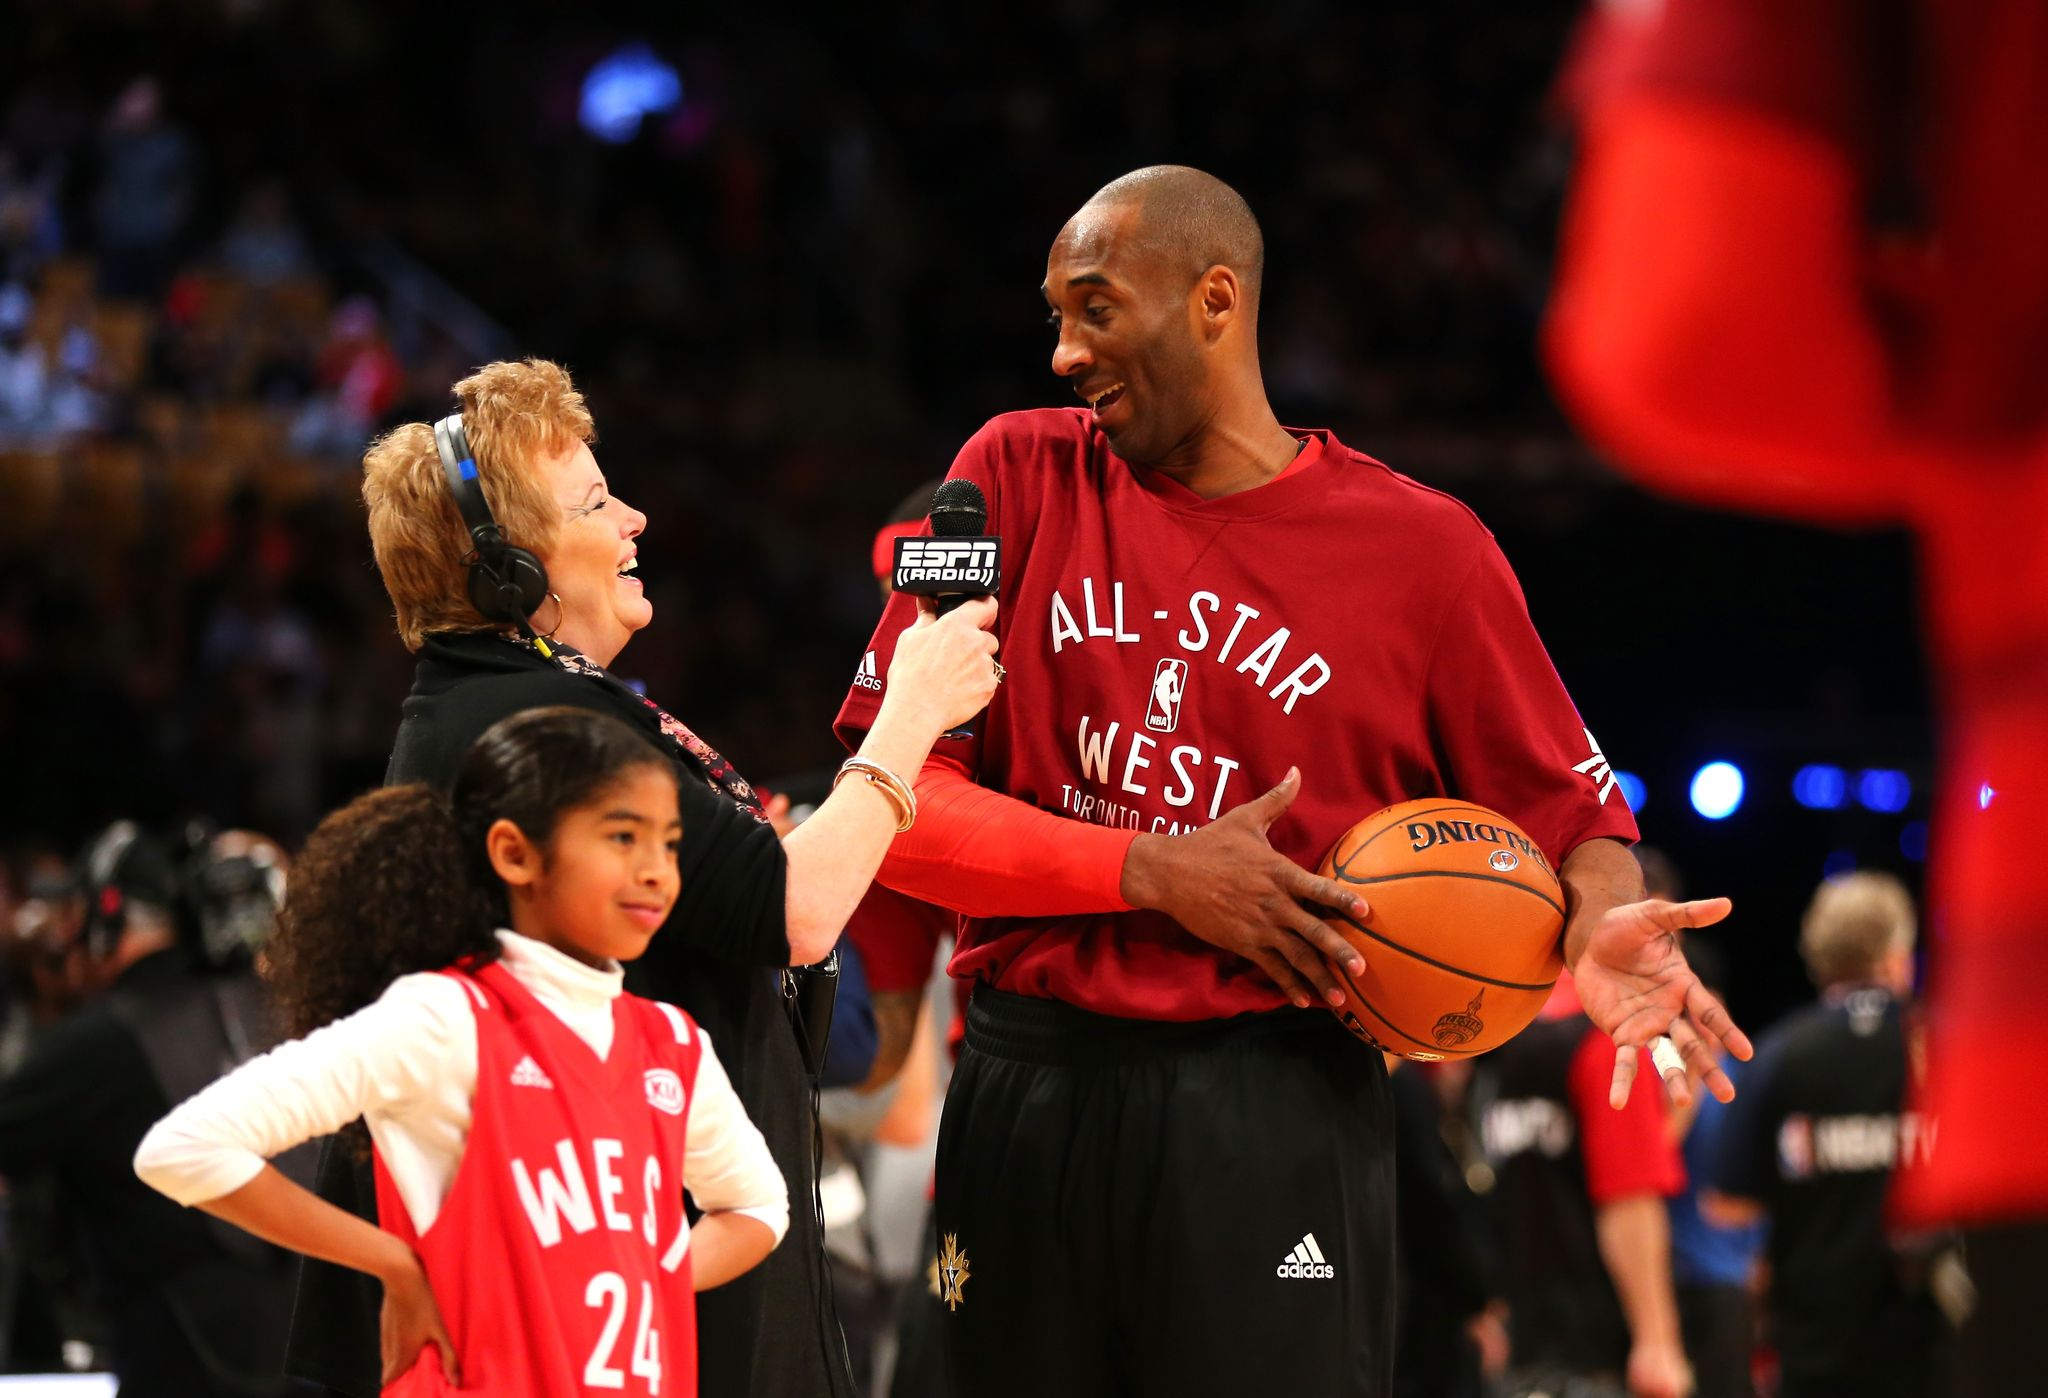 Kobe Bryant warms up with daughter Gianna Bryant at the NBA All-Star Game on February 14, 2016 in Toronto.  | Photo: Getty Images